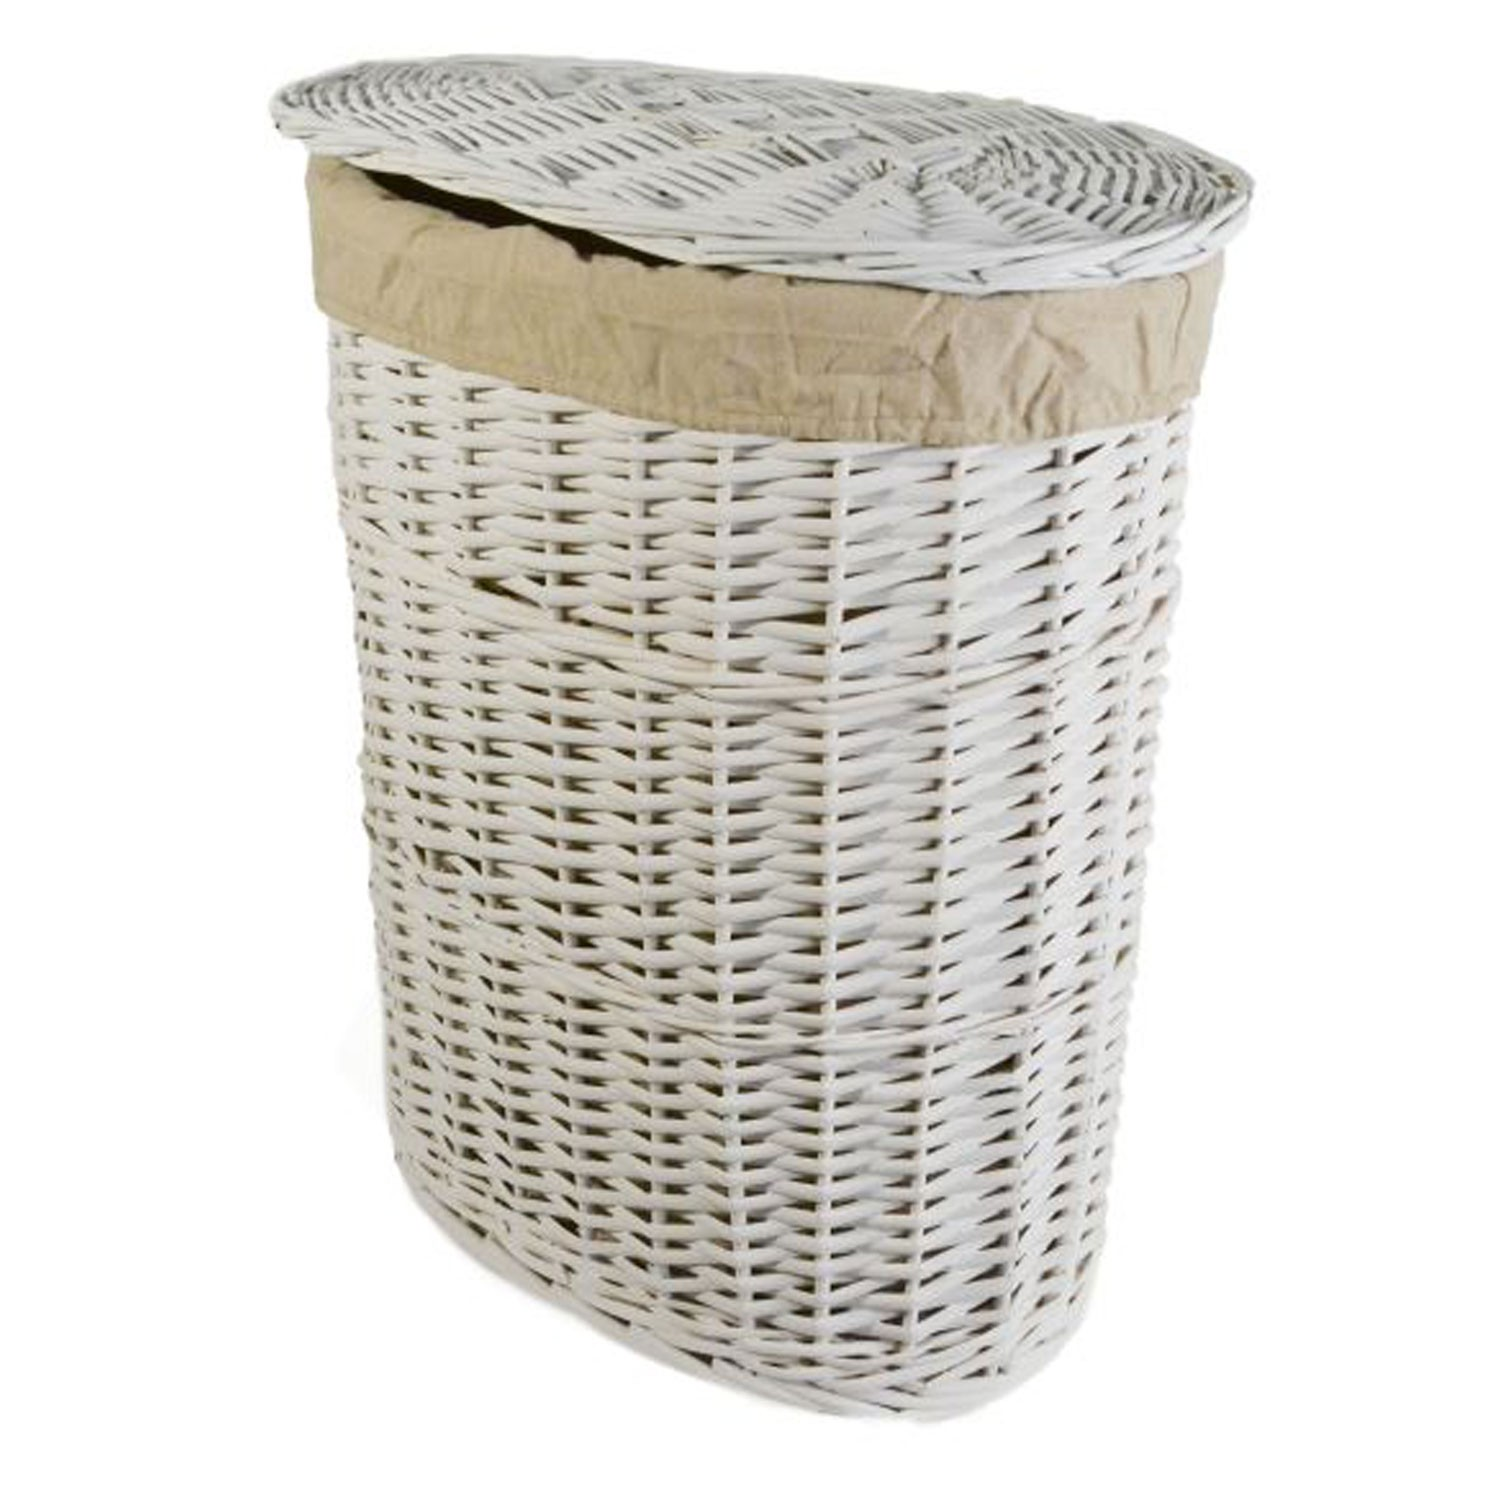 Small Laundry Cart Oval Willow Small Laundry Basket White